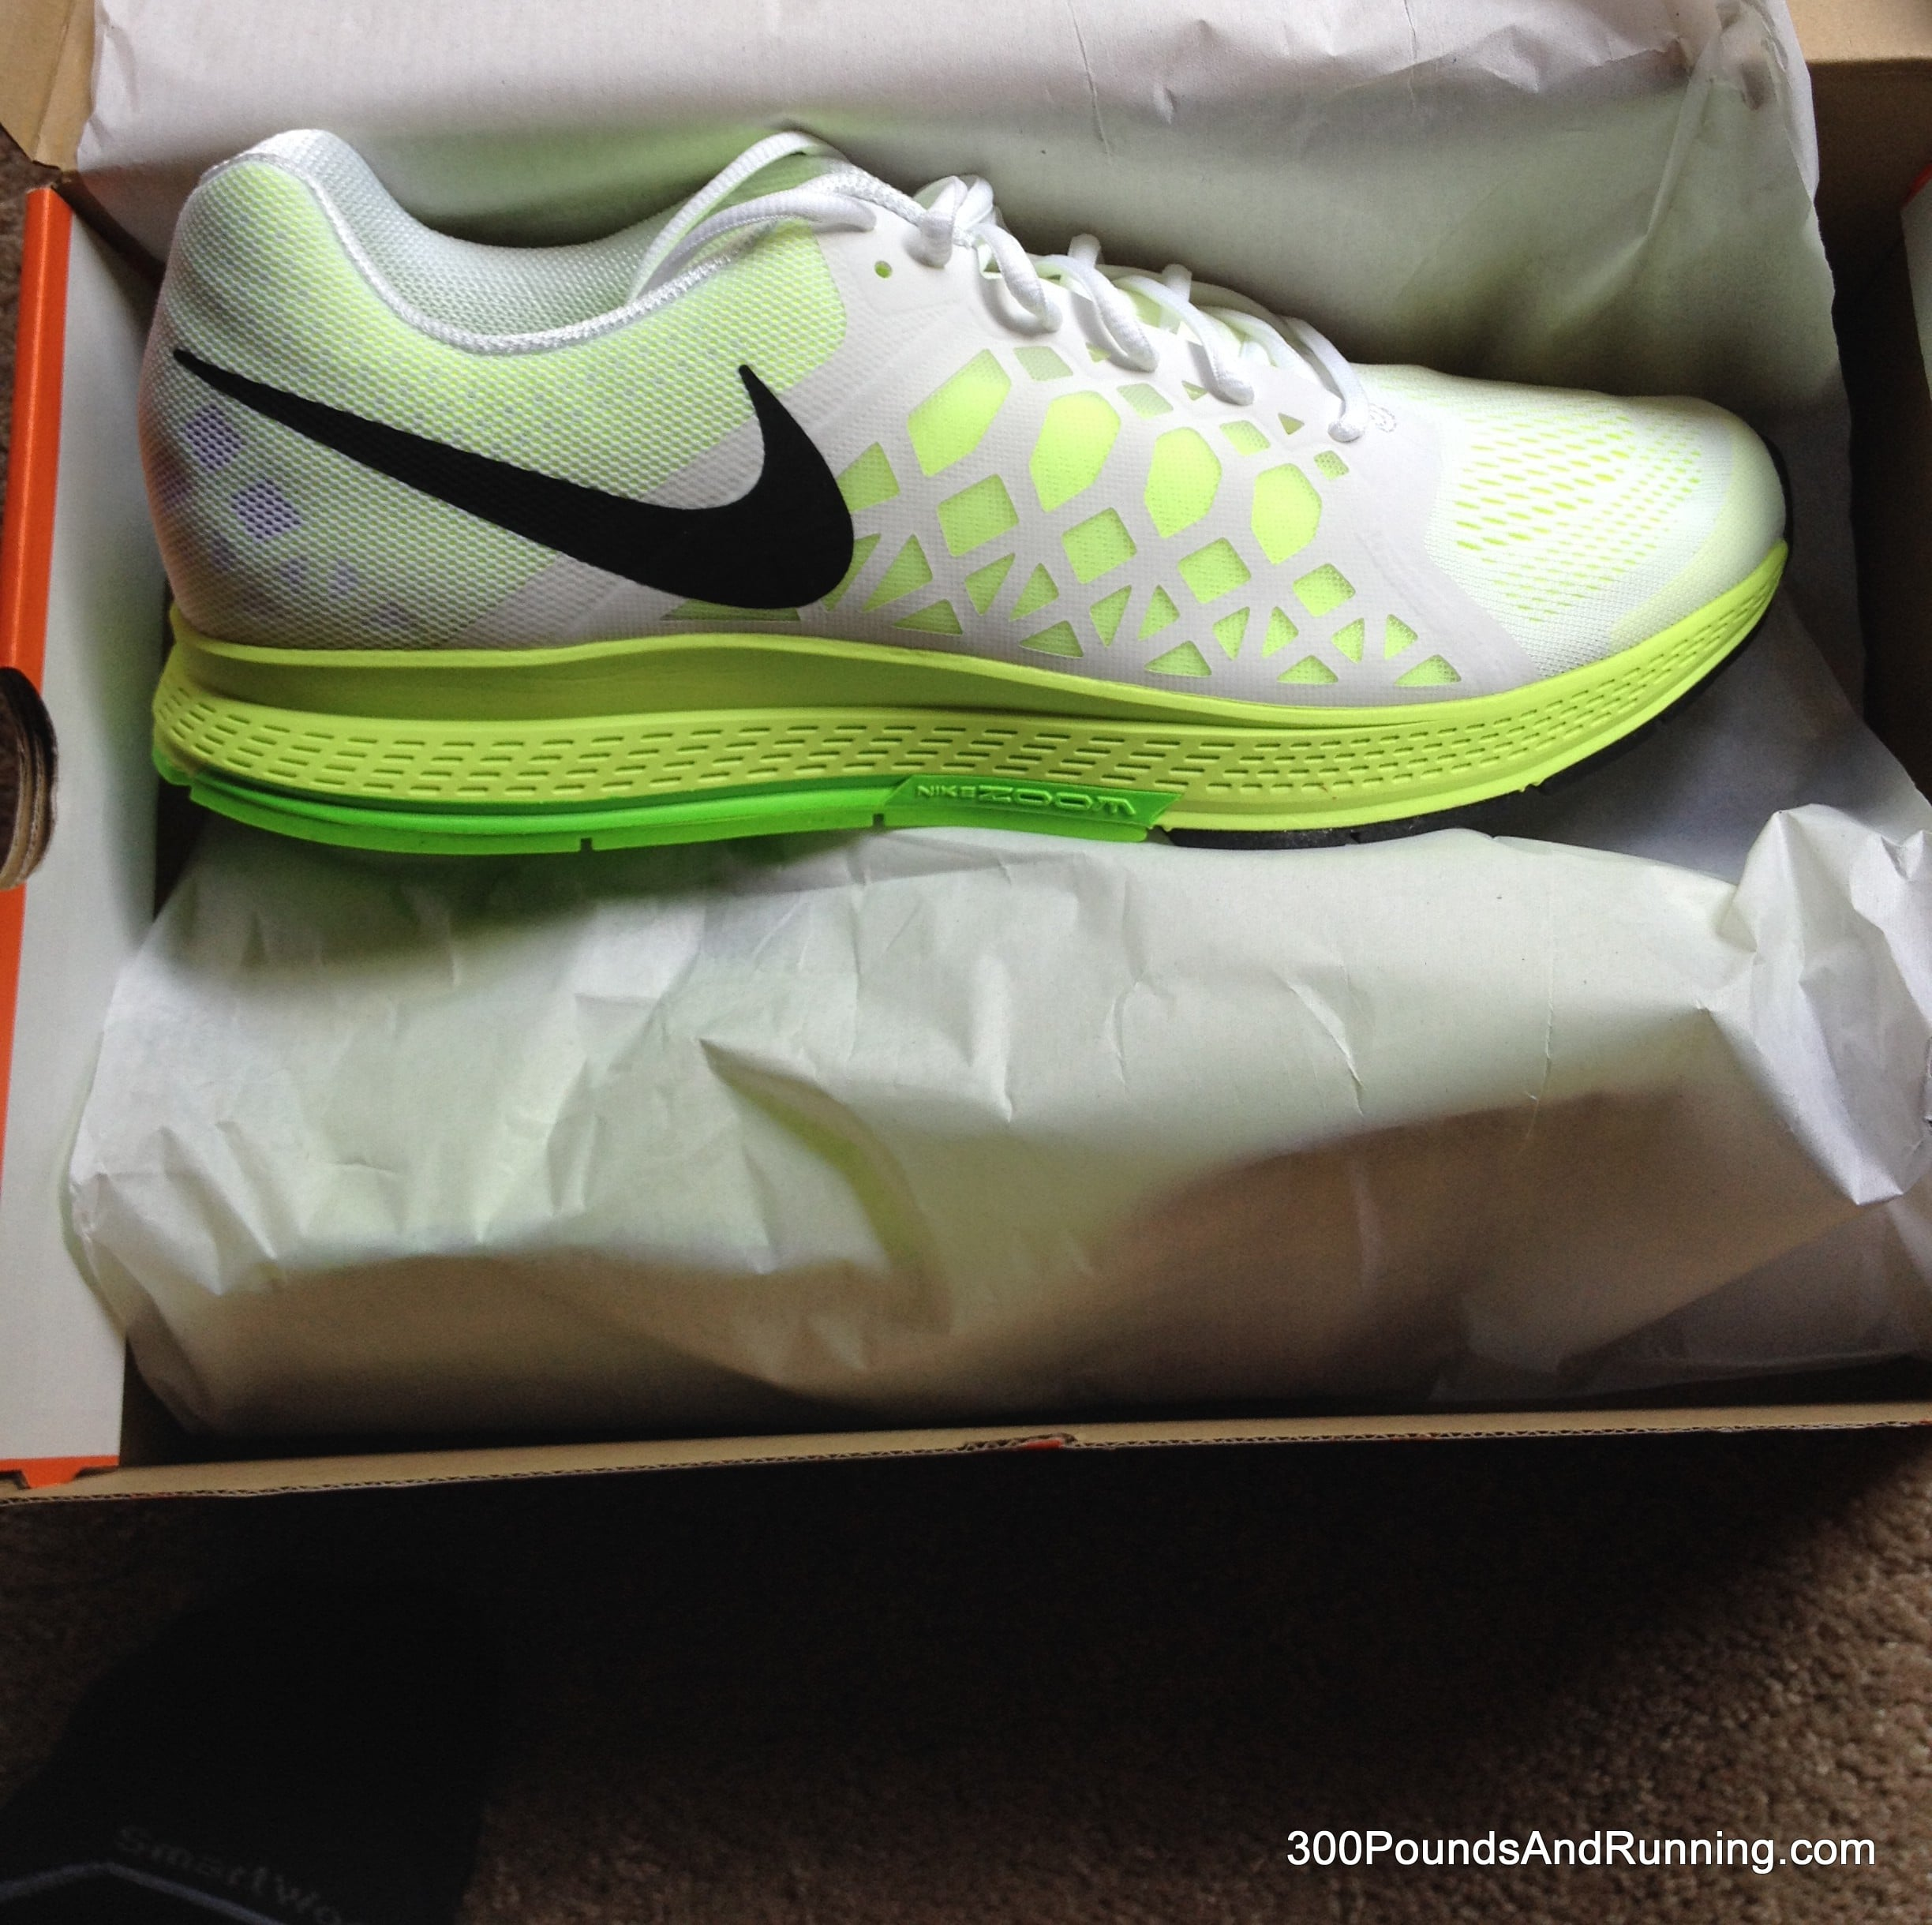 f8879687aab Nike Air Zoom Pegasus 31 Running Shoe Review • 300 POUNDS AND RUNNING